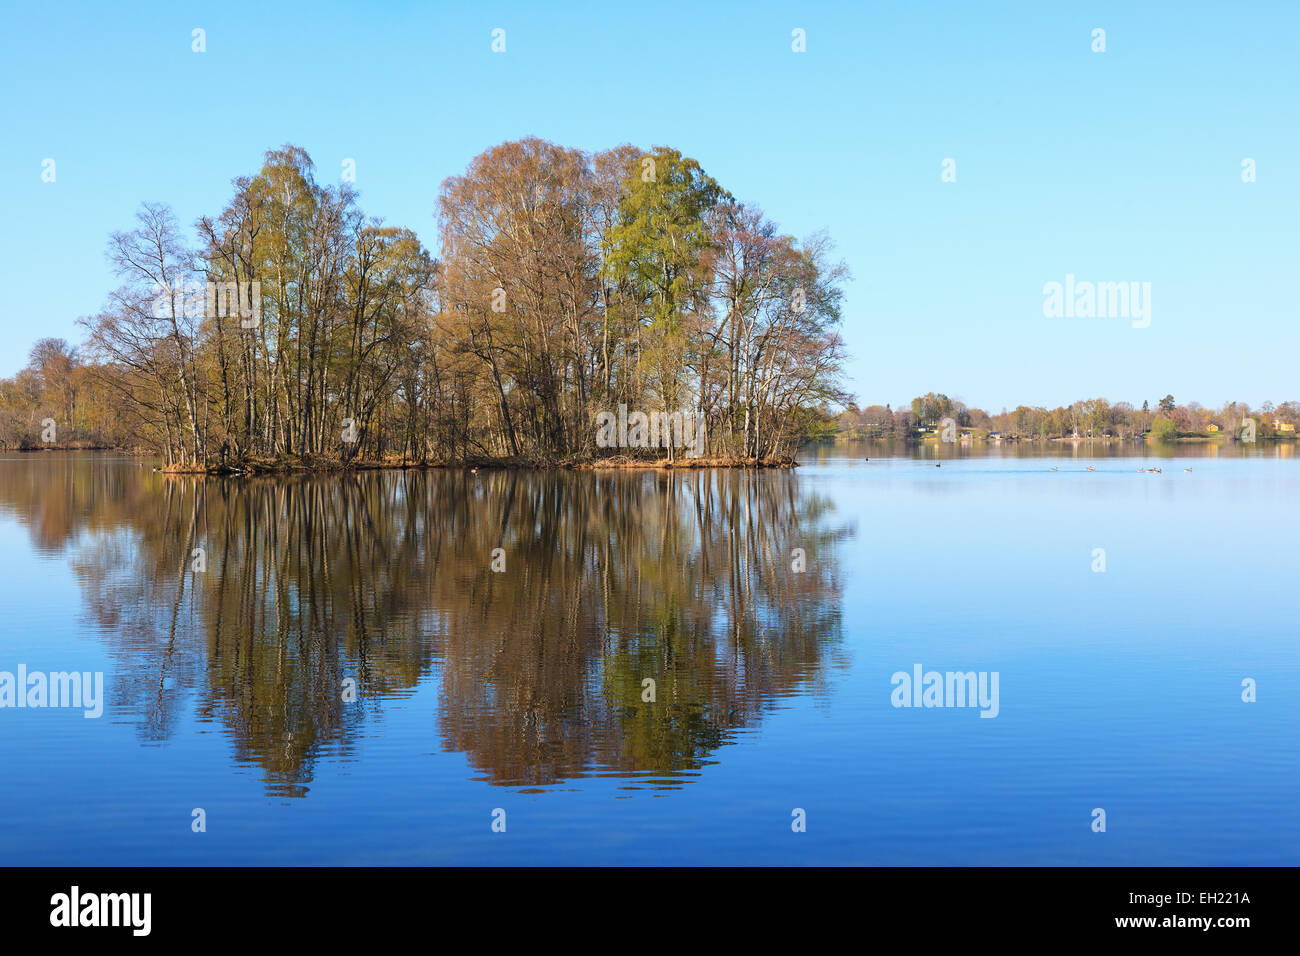 Reflections of the forest in early spring landscape - Stock Image